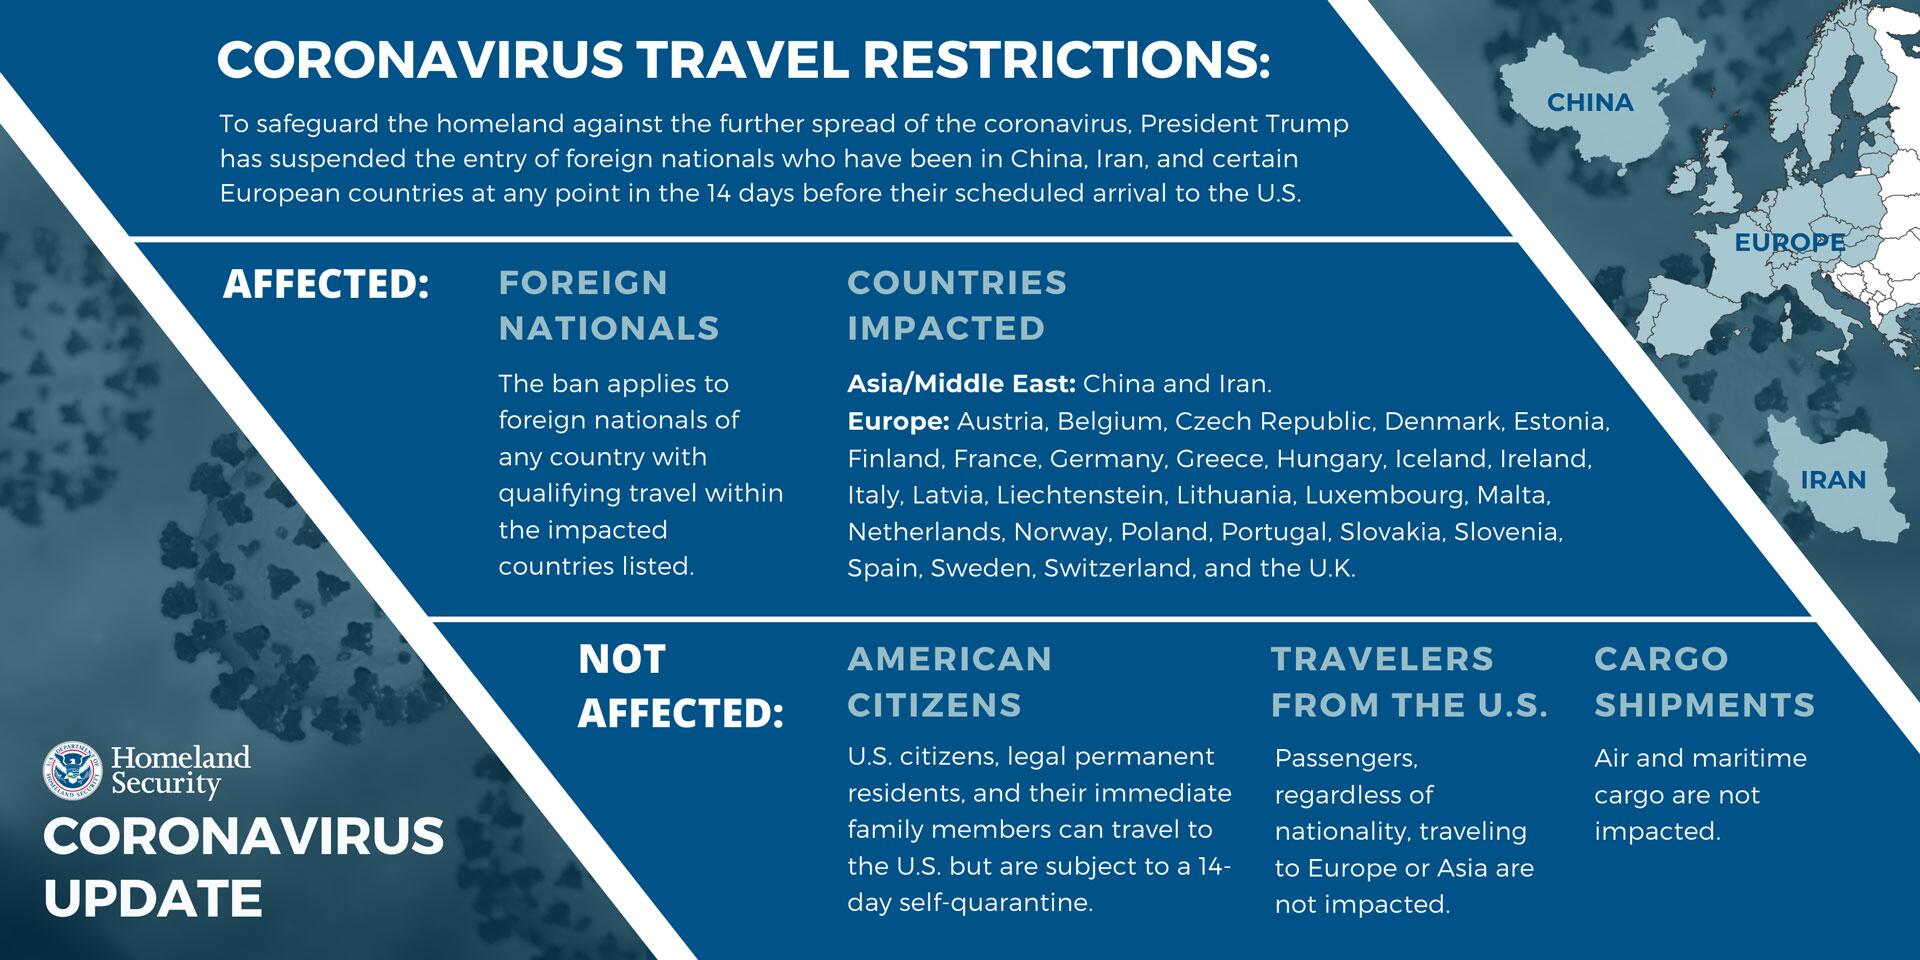 Coronavirus Travel Restrictions: To safeguard the homeland against the further spread of the coronavirus, President Trump has suspended the entry of foreign nationals who have been in China, Iran, and certain European countries at any point in the 14 days before their scheduled arrival to the US. | Affected: Foreign Nationals.  The ban applies to foreign nationals of any country with qualifying travel within the impacted countries listed. | Countries impacted: Asia/Middle East: China and Iran. Europe: Austria, Belgium, Czech Republic, Denmark, Estonia, Finland, France, Germany, Greece, Hungary, Iceland, Ireland, Italy, Latvia, Liechtenstein, Lithuania, Luxembourg, Malta, Netherlands, Norway, Poland, Portugal, Slovakia, Slovenia, Spain, Sweden, Switzerland, and the U.K. | Not affected: American Citizens: U.S. citizens, legal permanent residents, and their immediate family members can travel to the US but are subject to a 14-day self-quarantine; Travelers from the US: Passengers, regardless of nationality, traveling to Europe or Asia are not impacted; Cargo Shipments: Air and maritime cargo are not impacted.